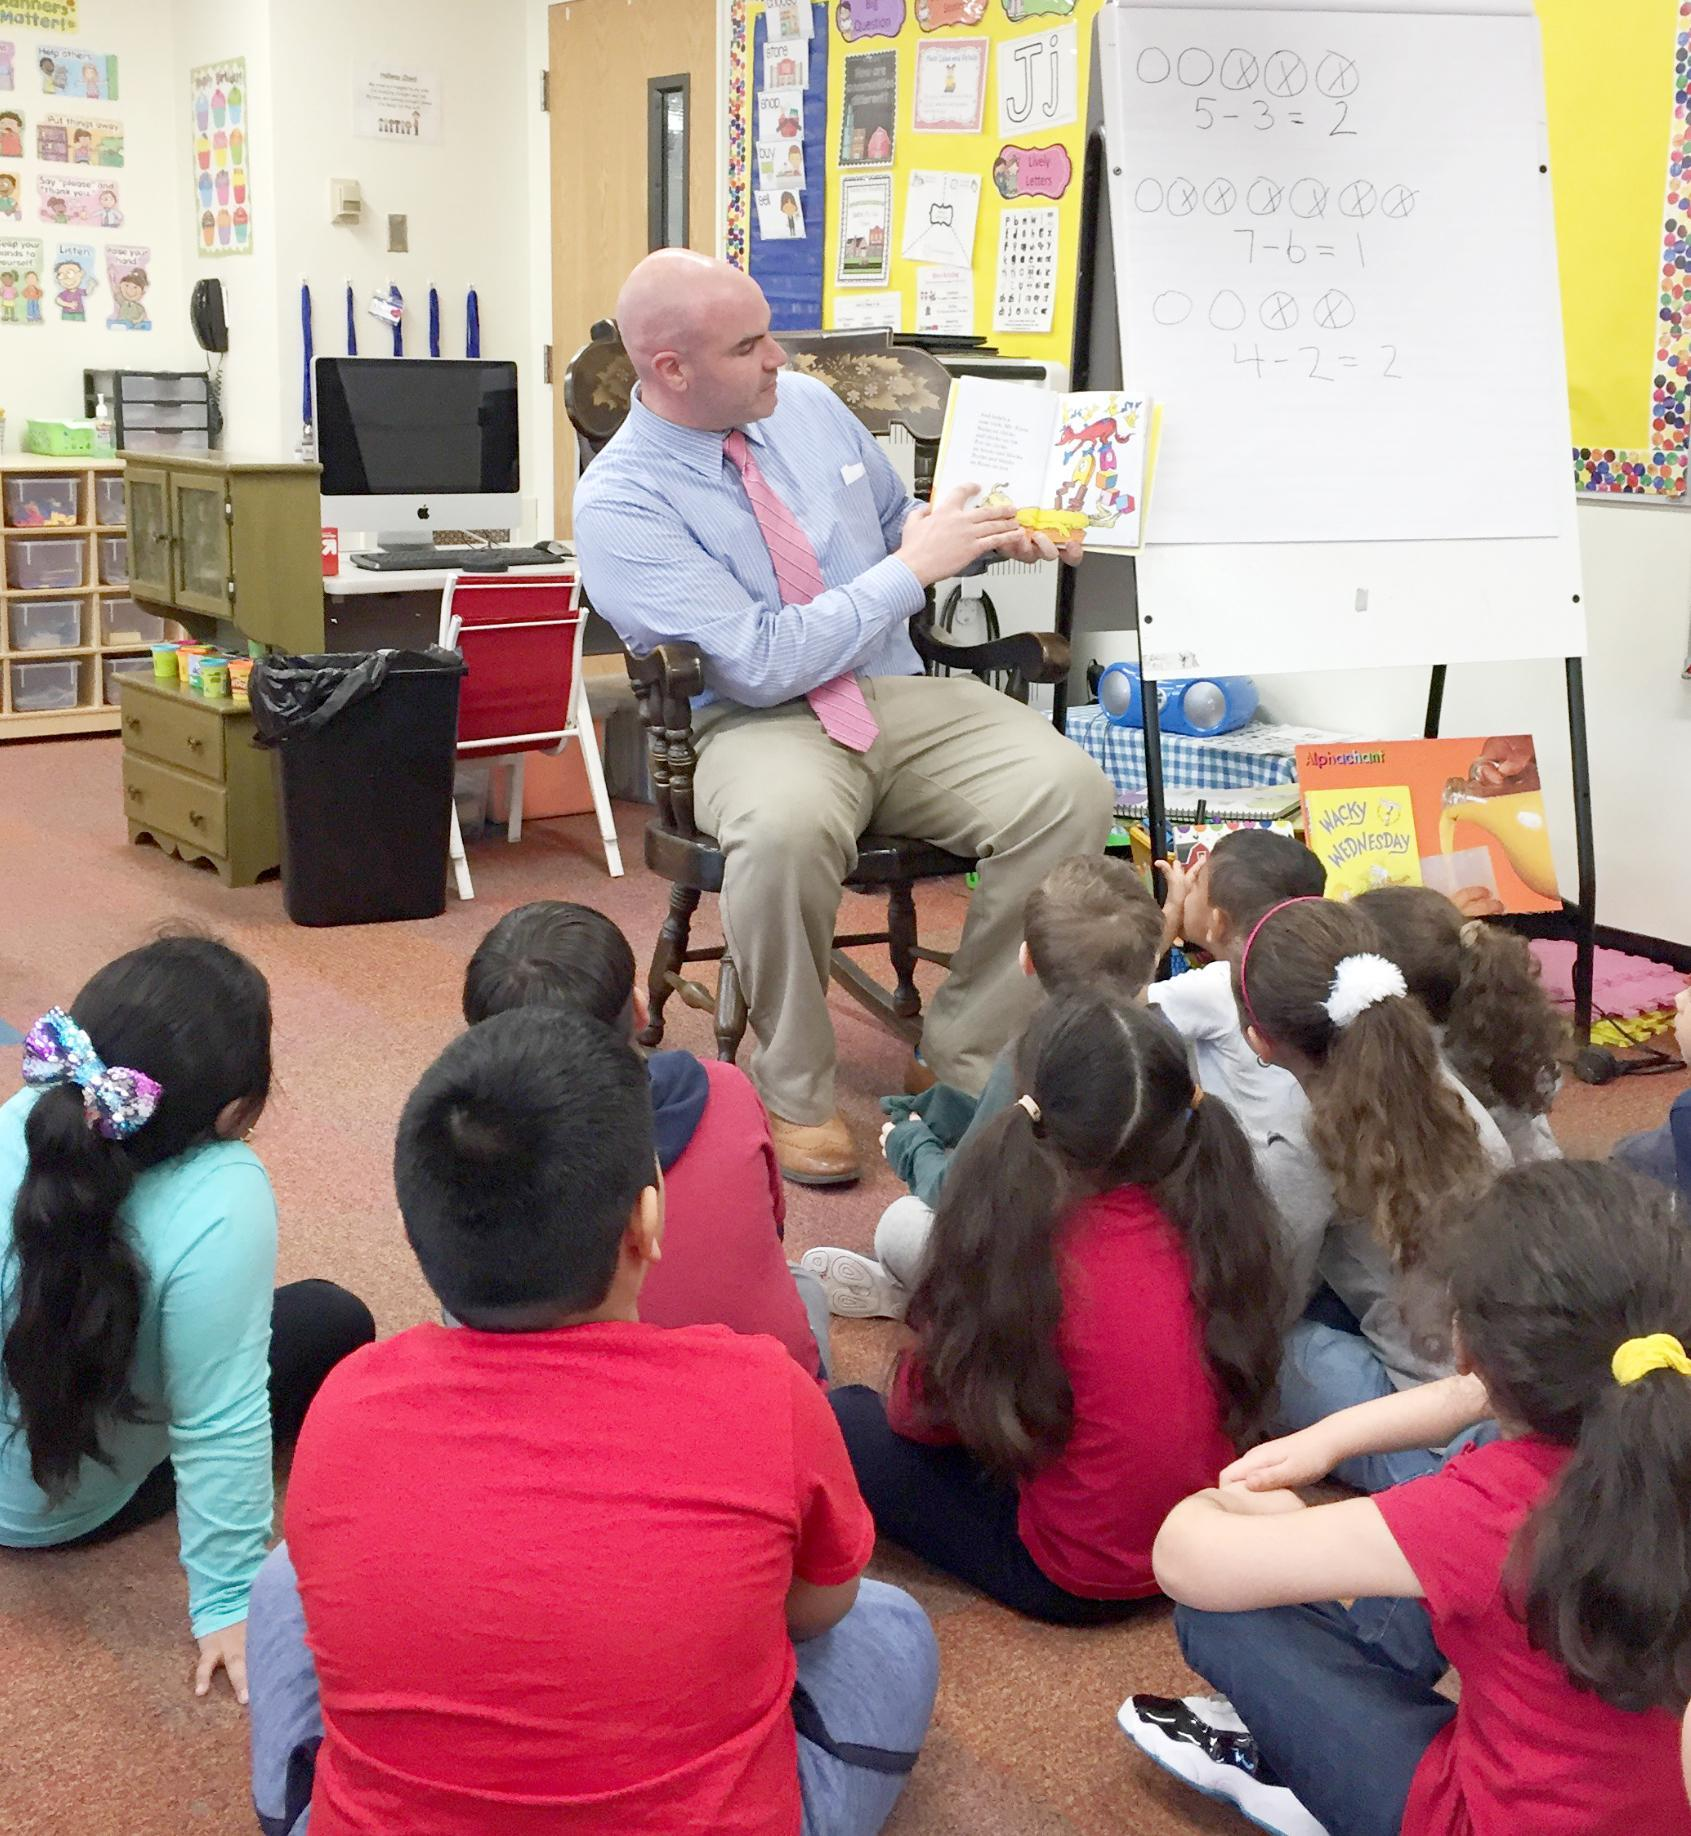 Educator reading to students, holding open a book